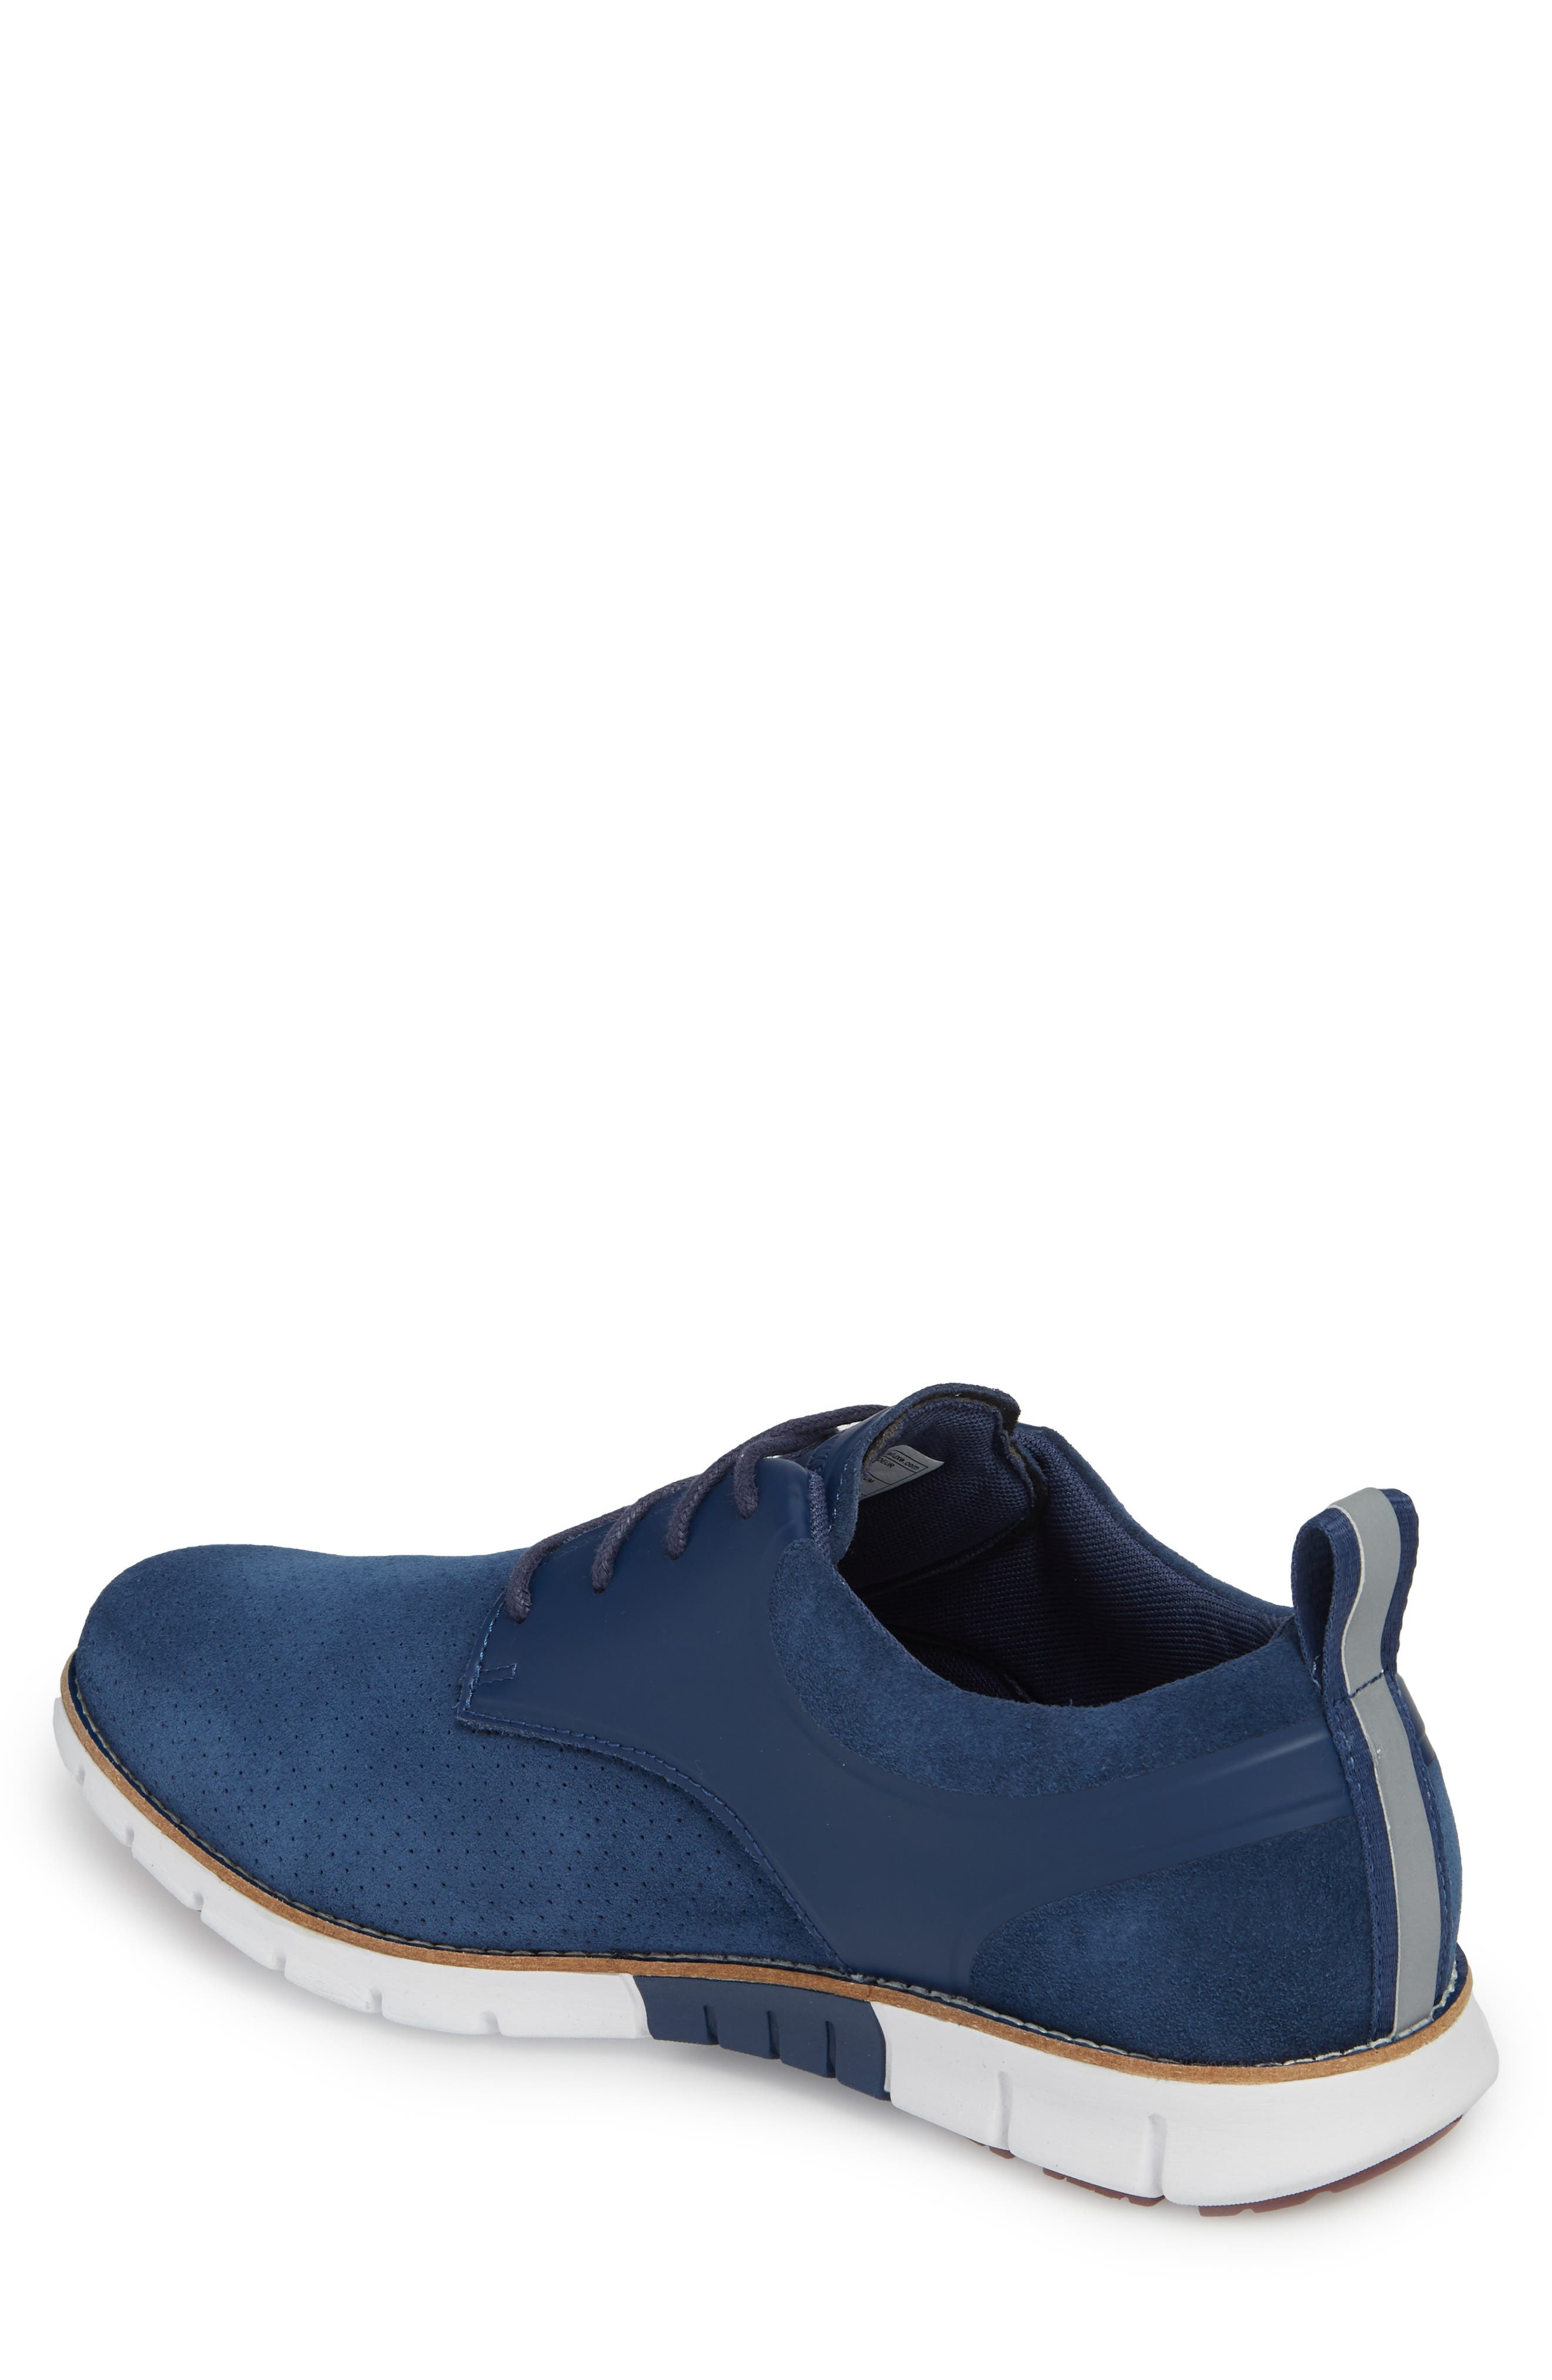 Ridley Perforated Low Top Sneaker,                             Alternate thumbnail 2, color,                             NAVY LEATHER